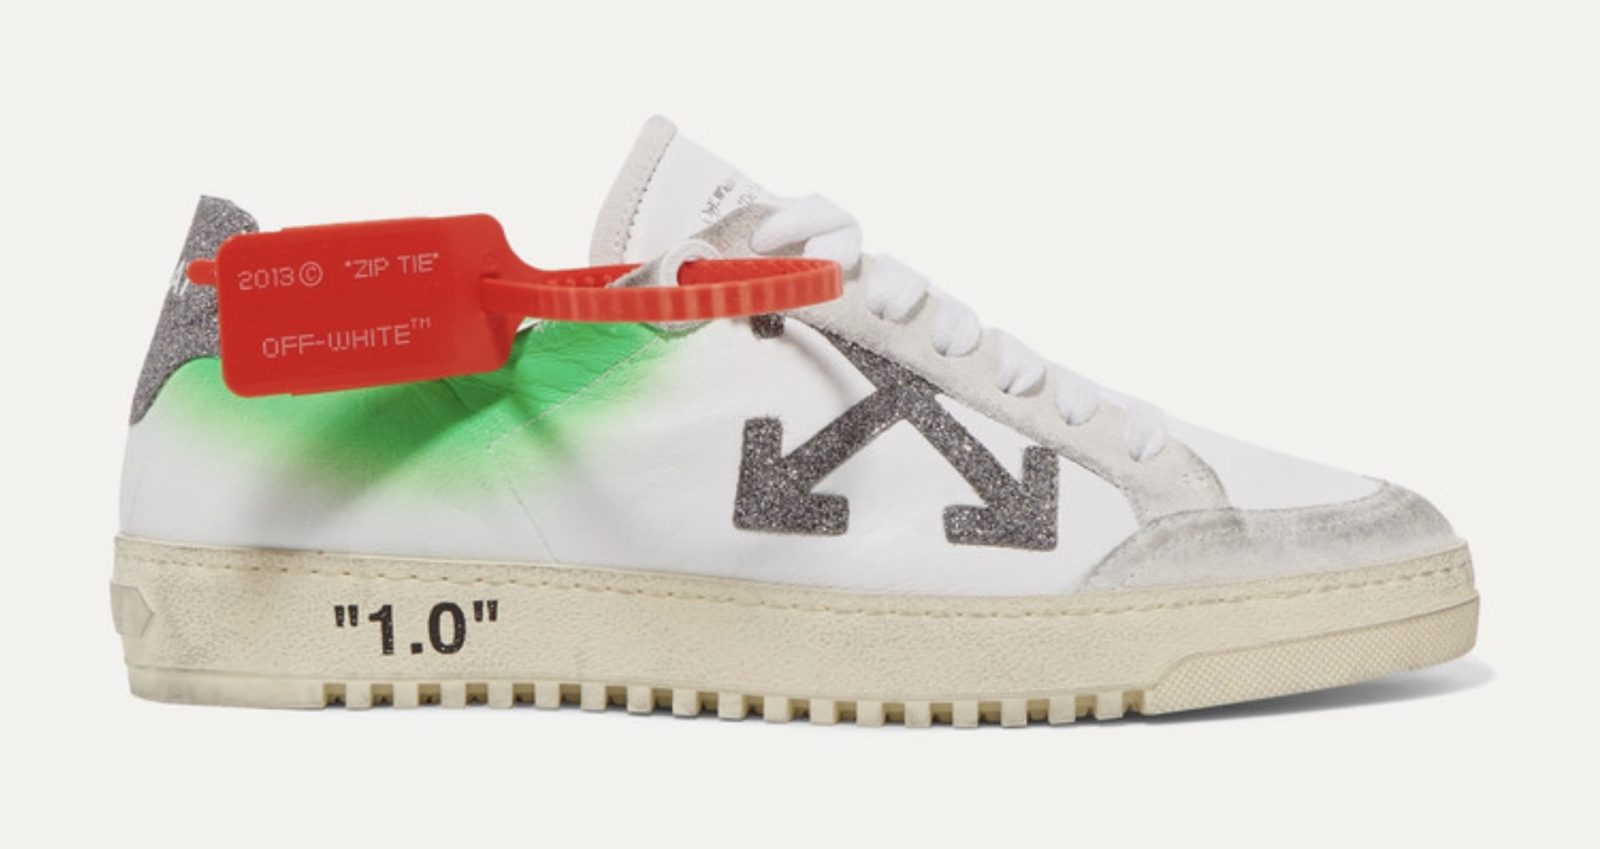 Off-White Arrow 2.0 distressed leather and suede sneakers